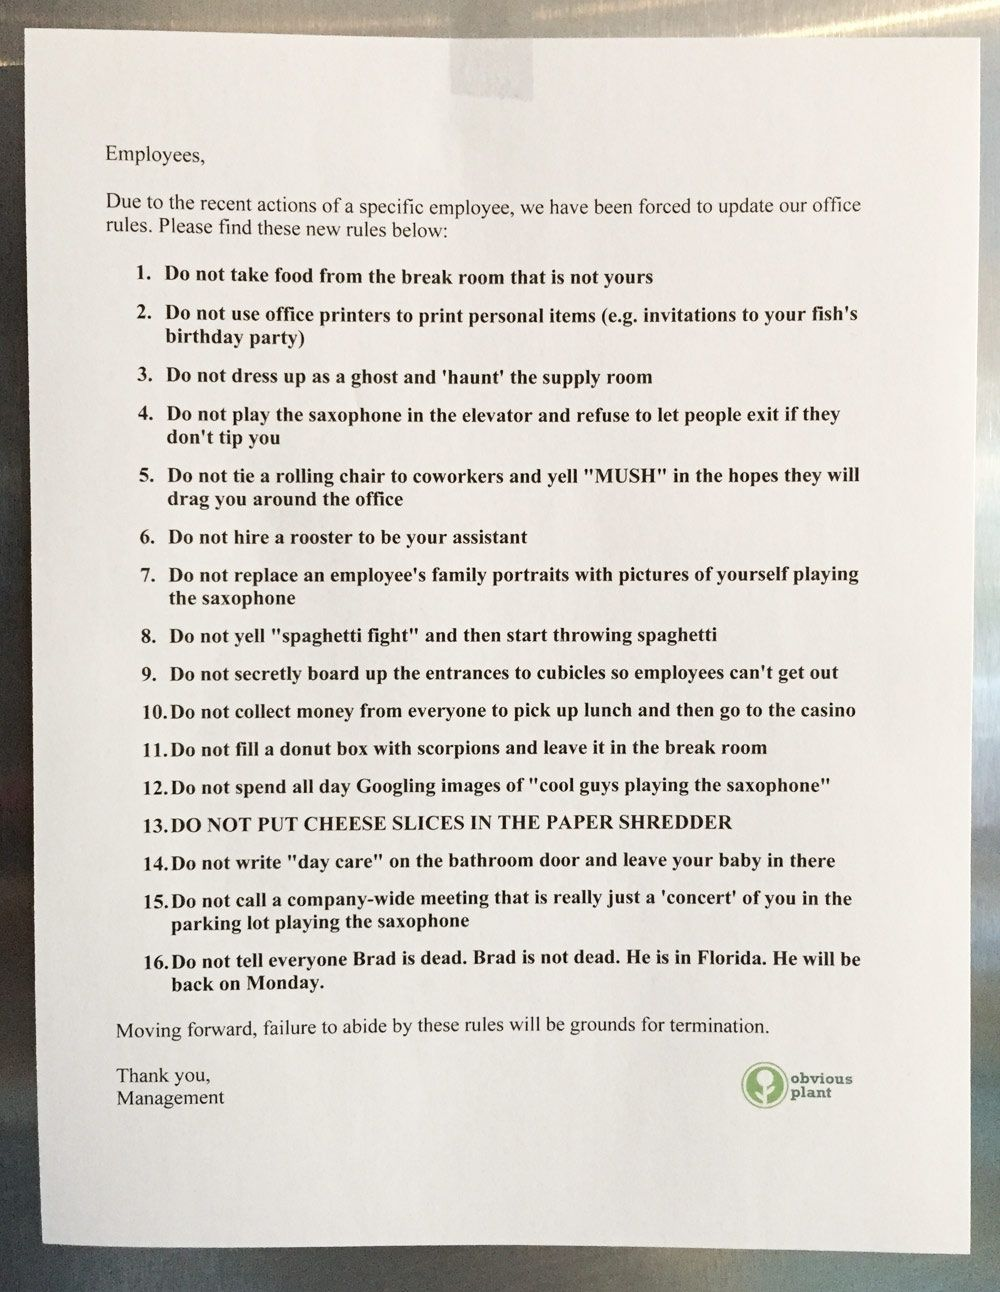 I Left Some New Office Rules In The Break Room Of An Don